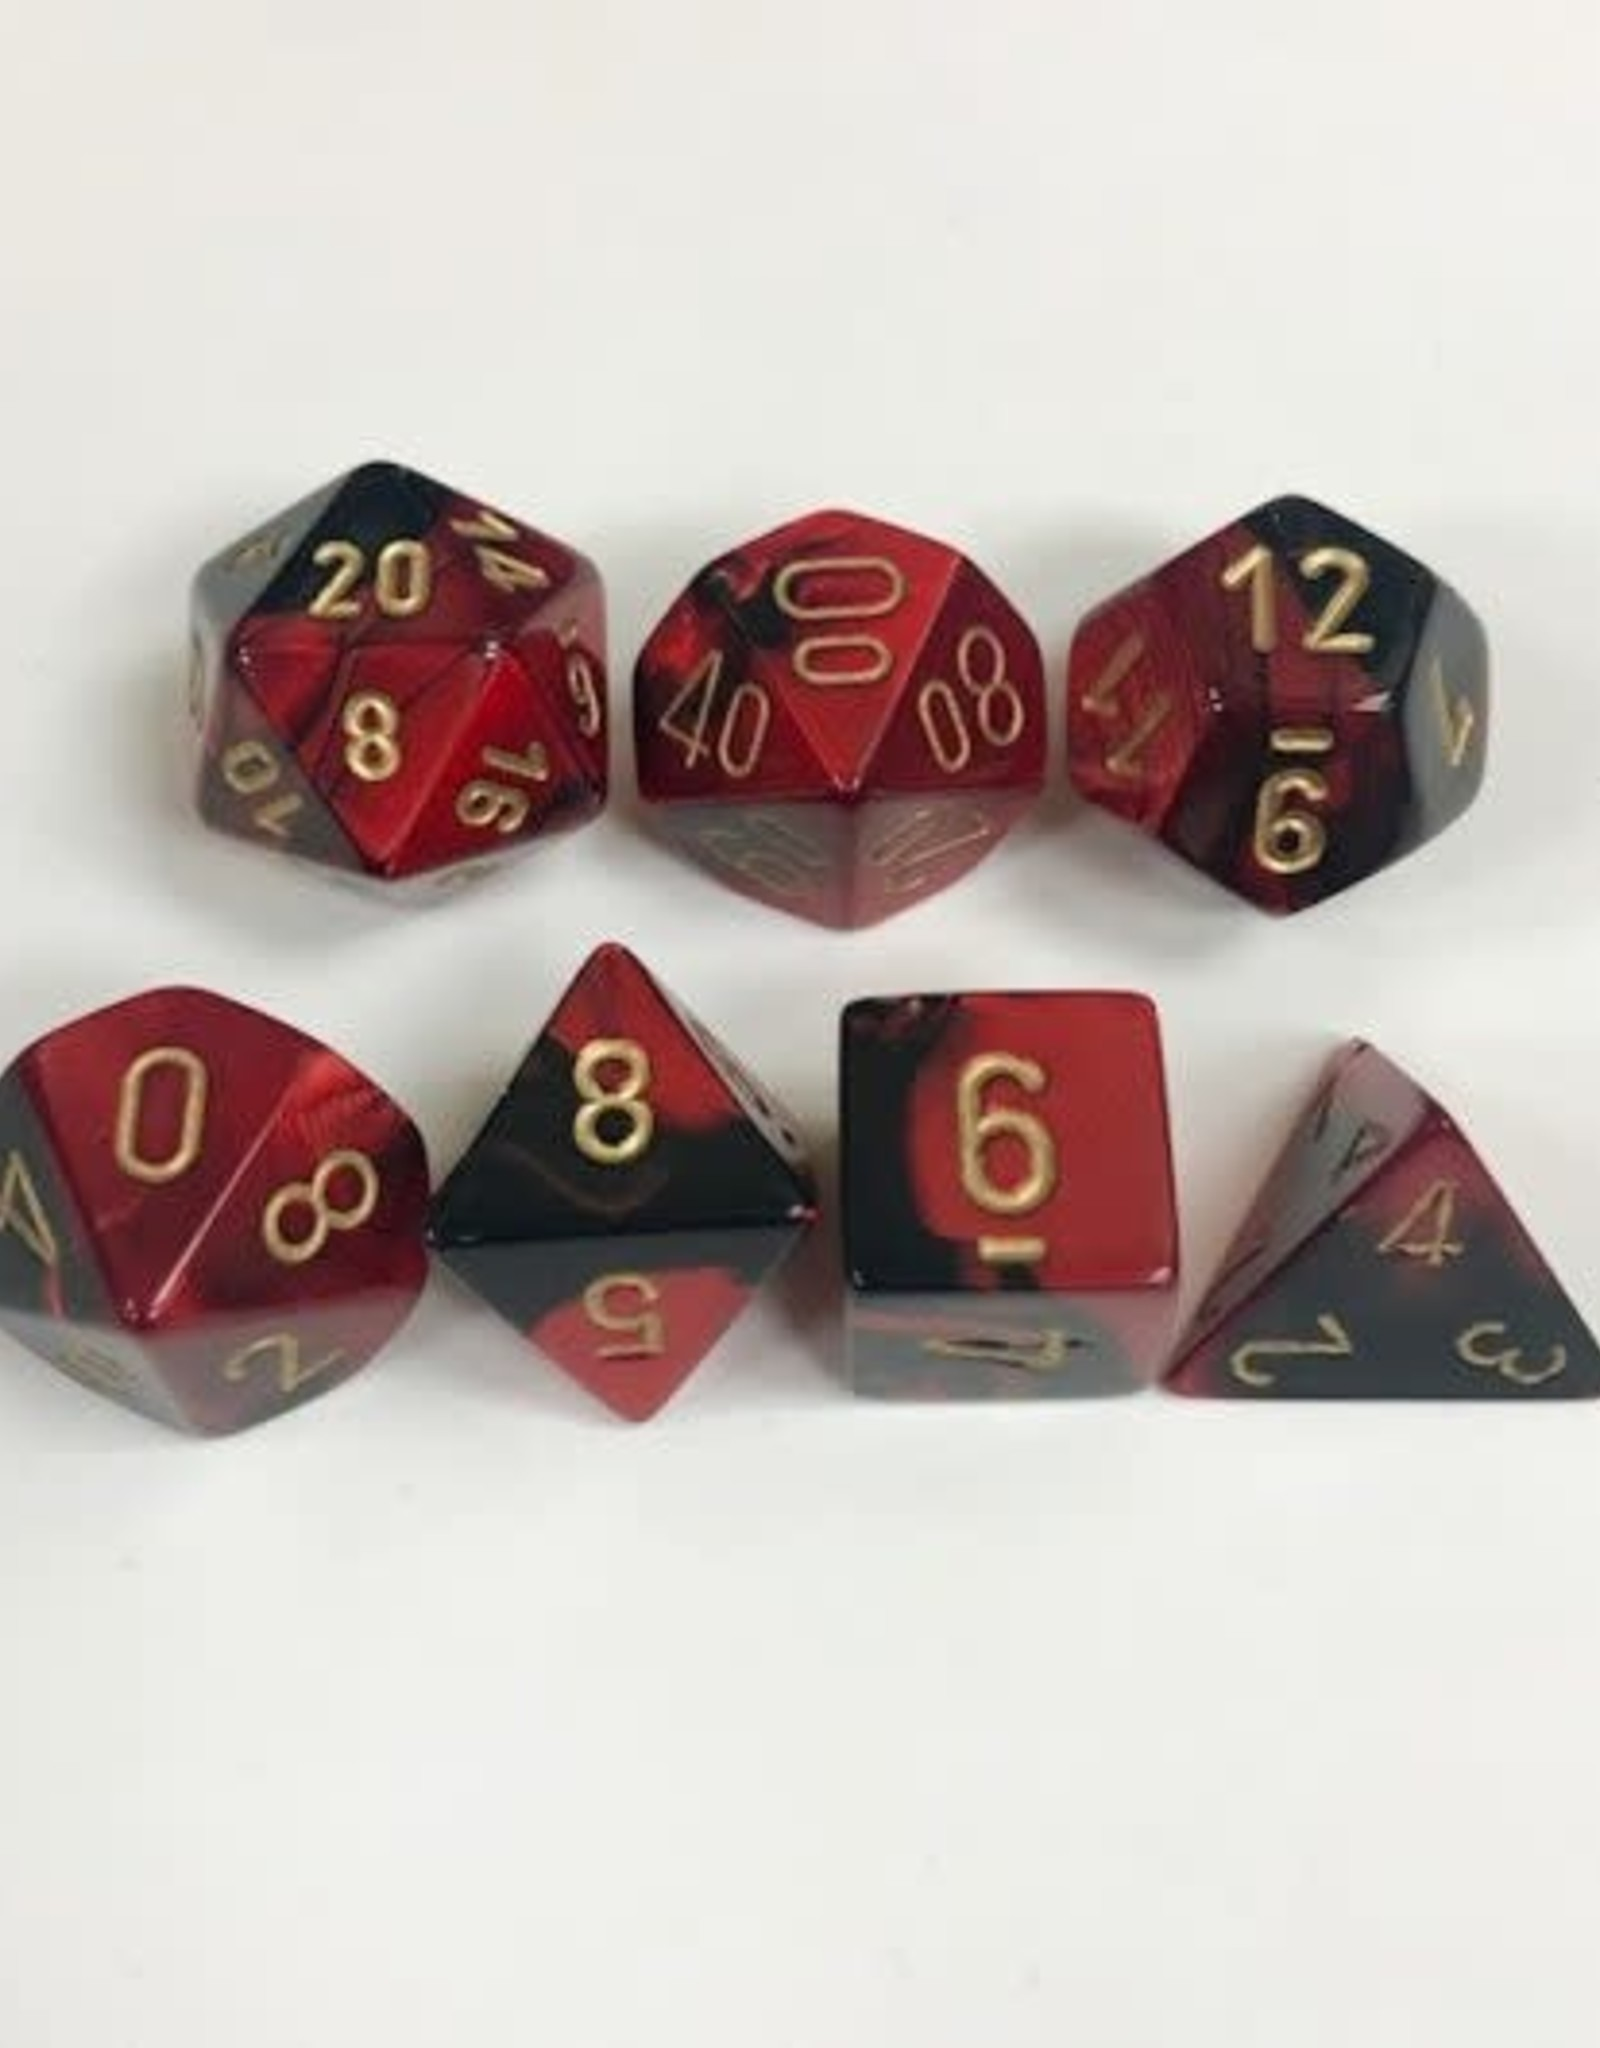 Chessex Gemini Poly 7 set: Black & Red w/ Gold